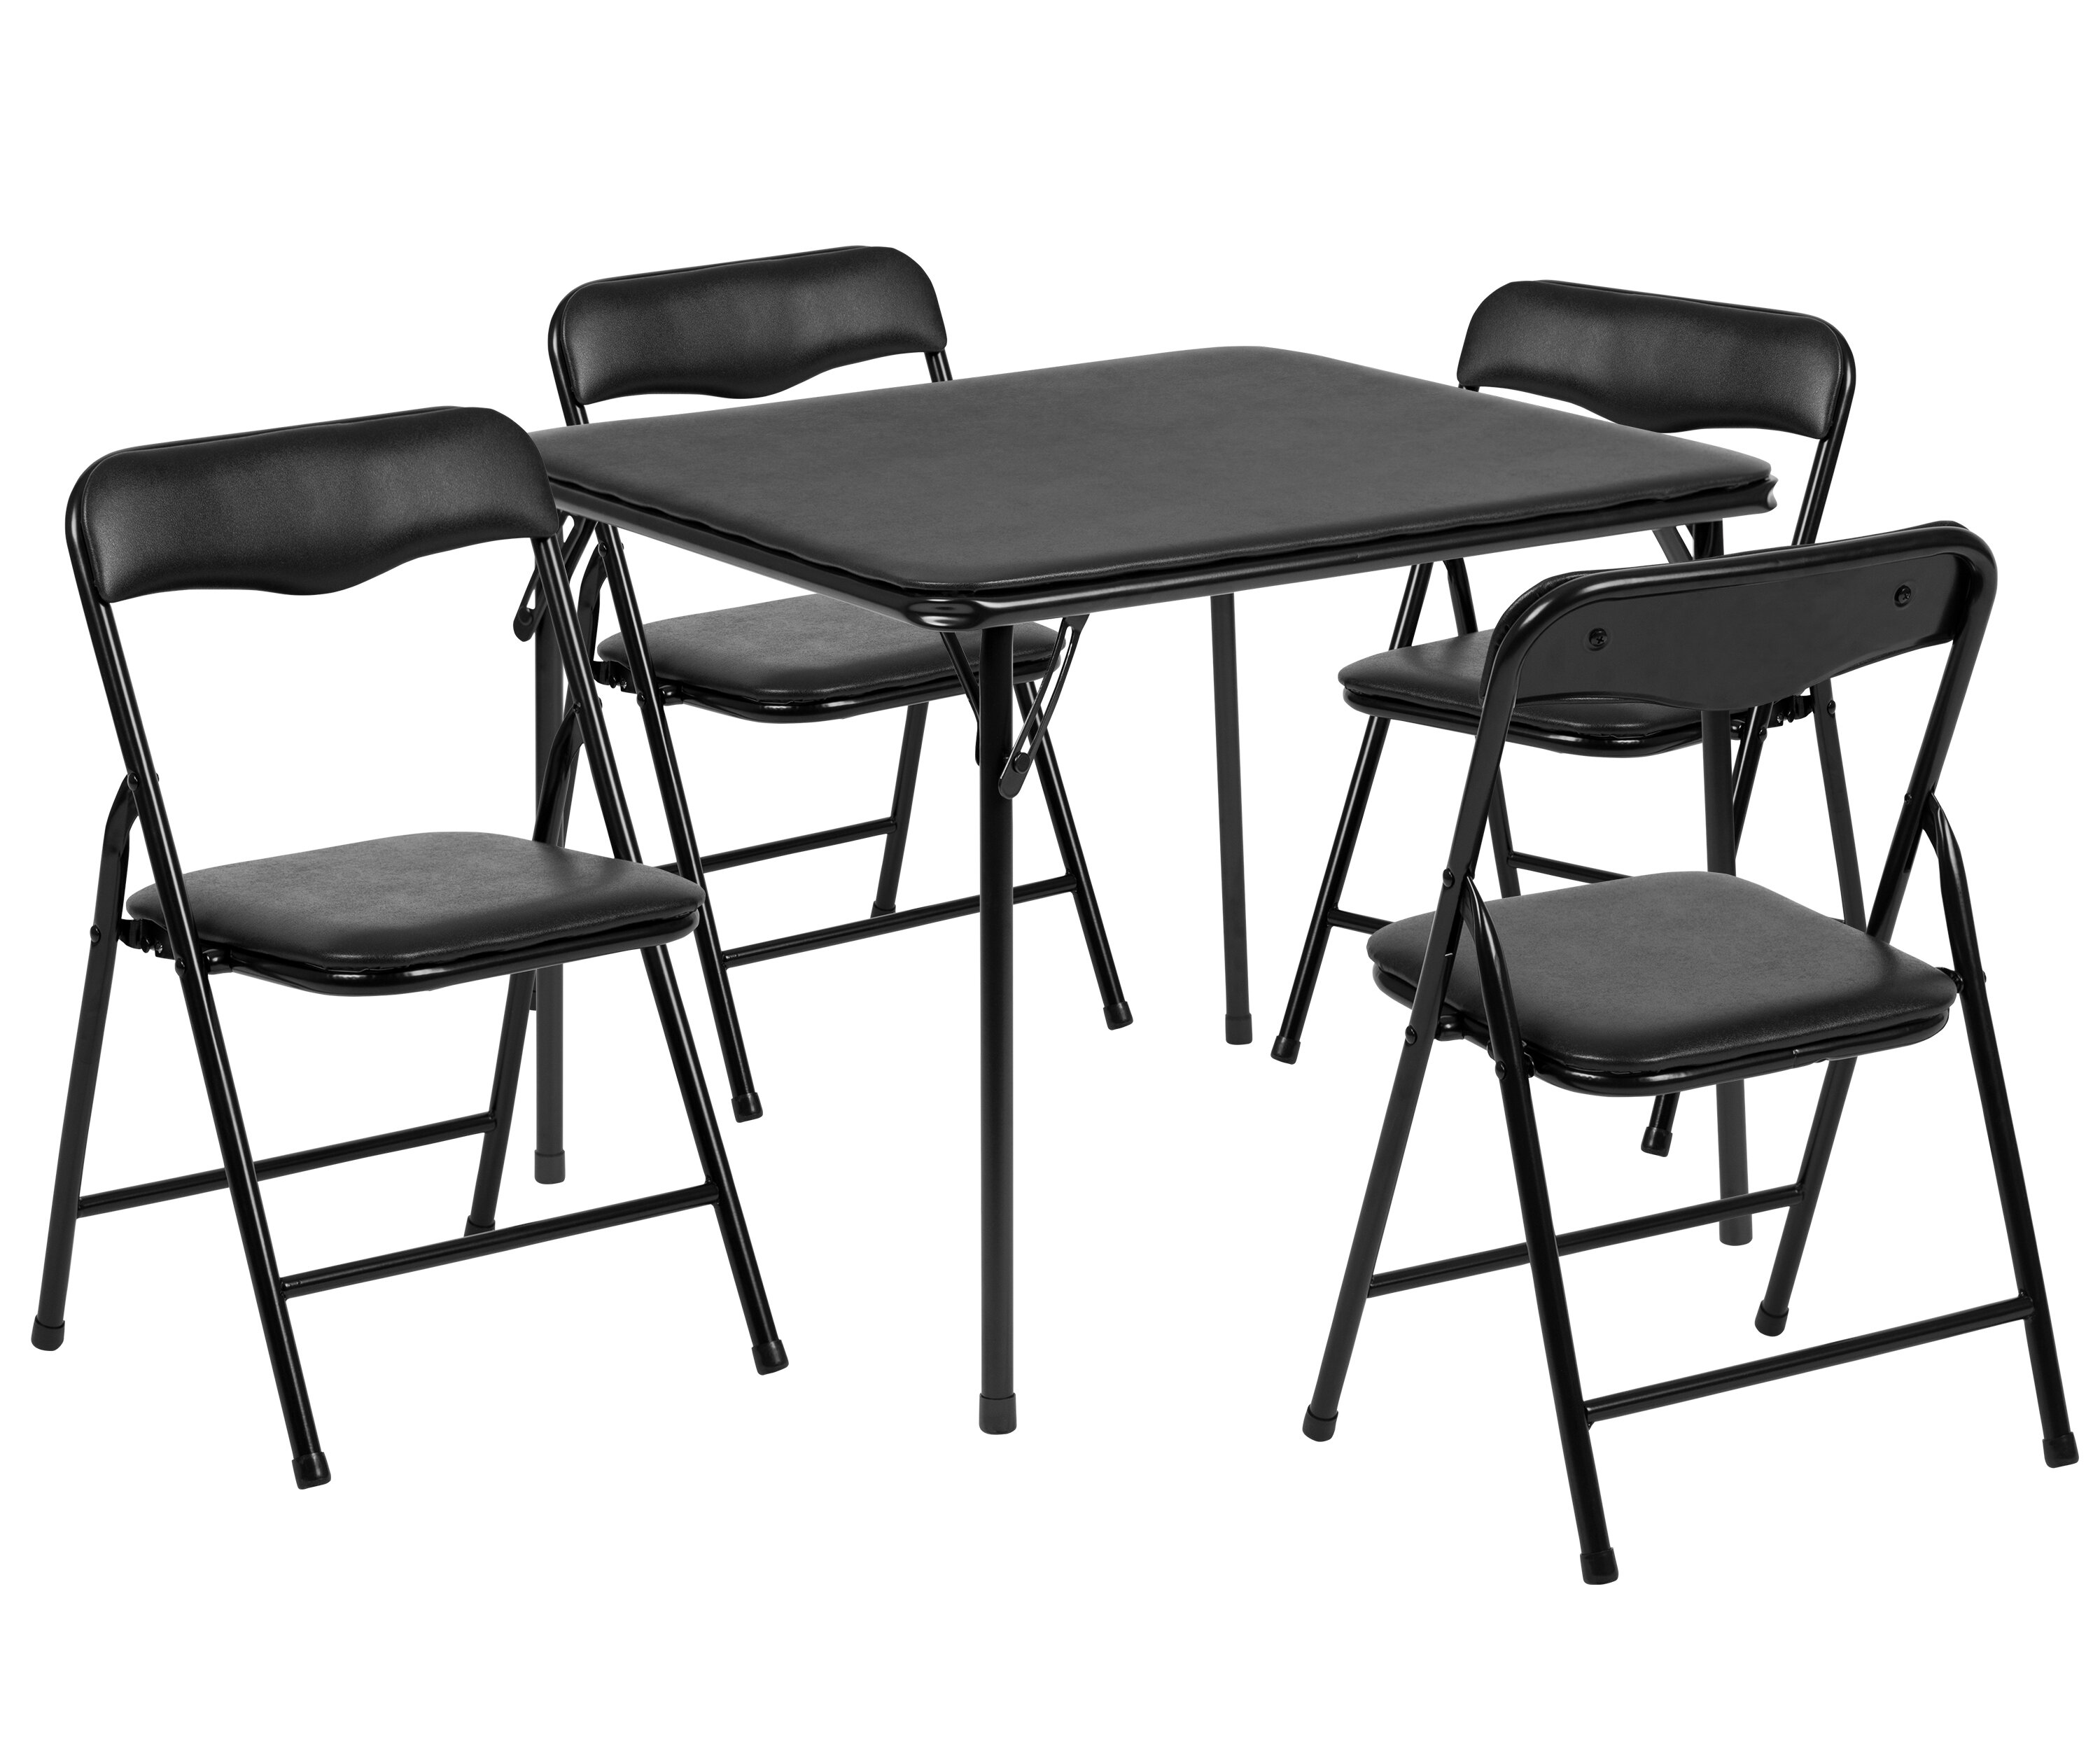 Patryk Kids 10 Piece Square Interactive Table and Chair Set